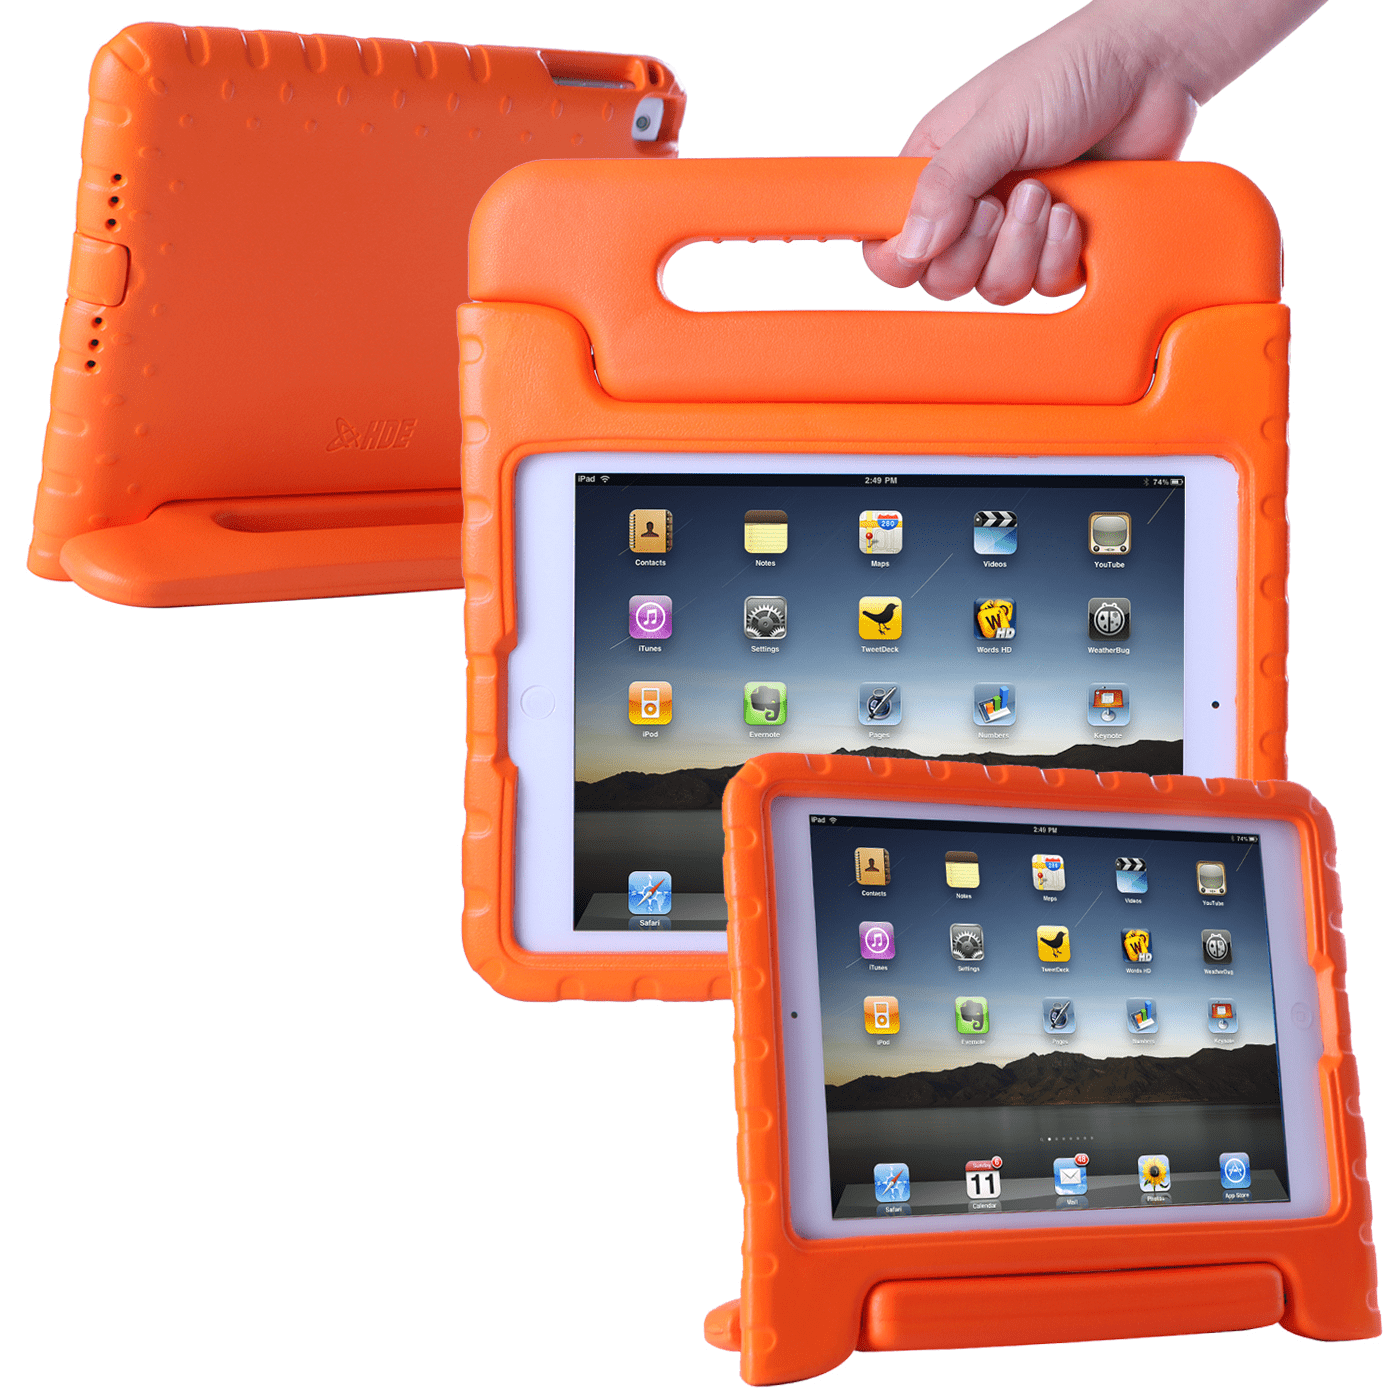 HDE 2017 iPad Case for Kids with Handle Stand Lightweight Shock Proof Cover for Apple iPad (7th Generation iPad, March 2017 Release, Orange)